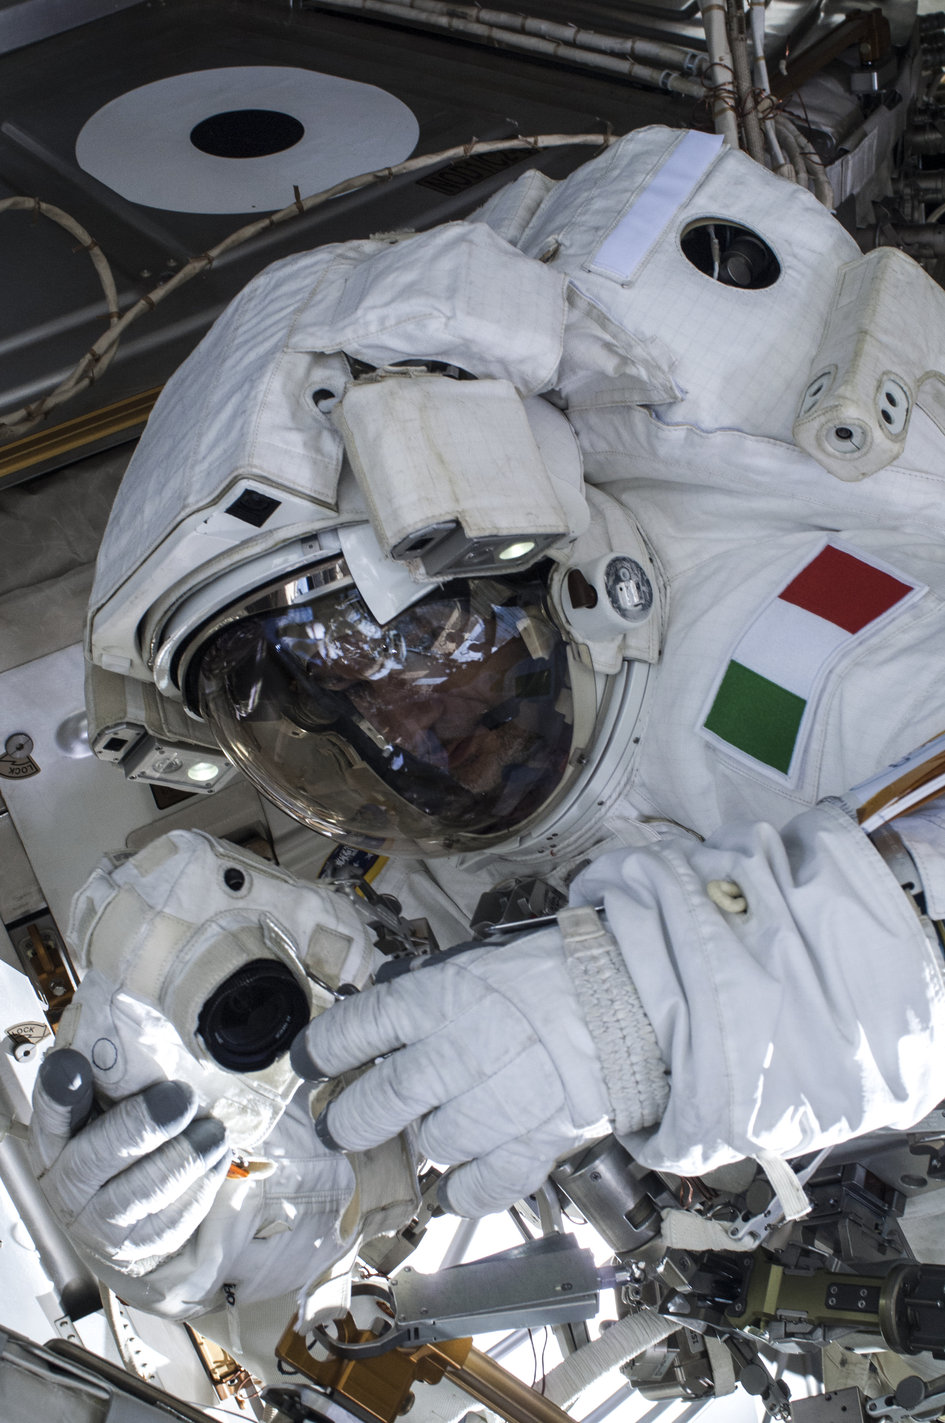 Luca Parmitano 2nd Spacewalk